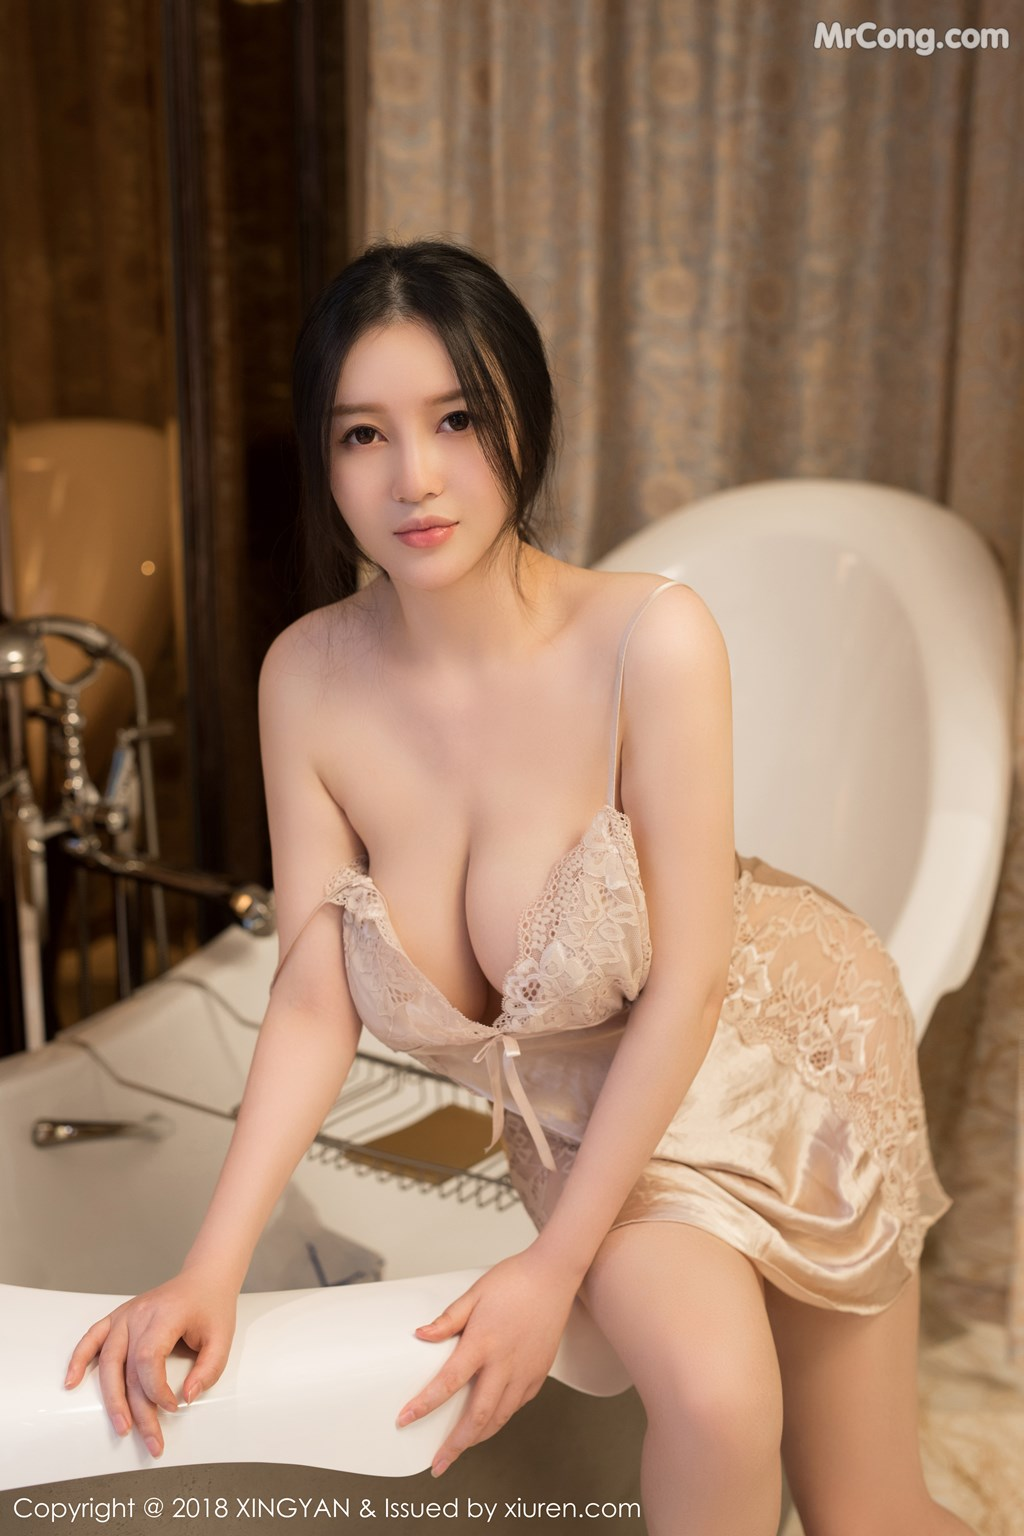 anh-sexy-1